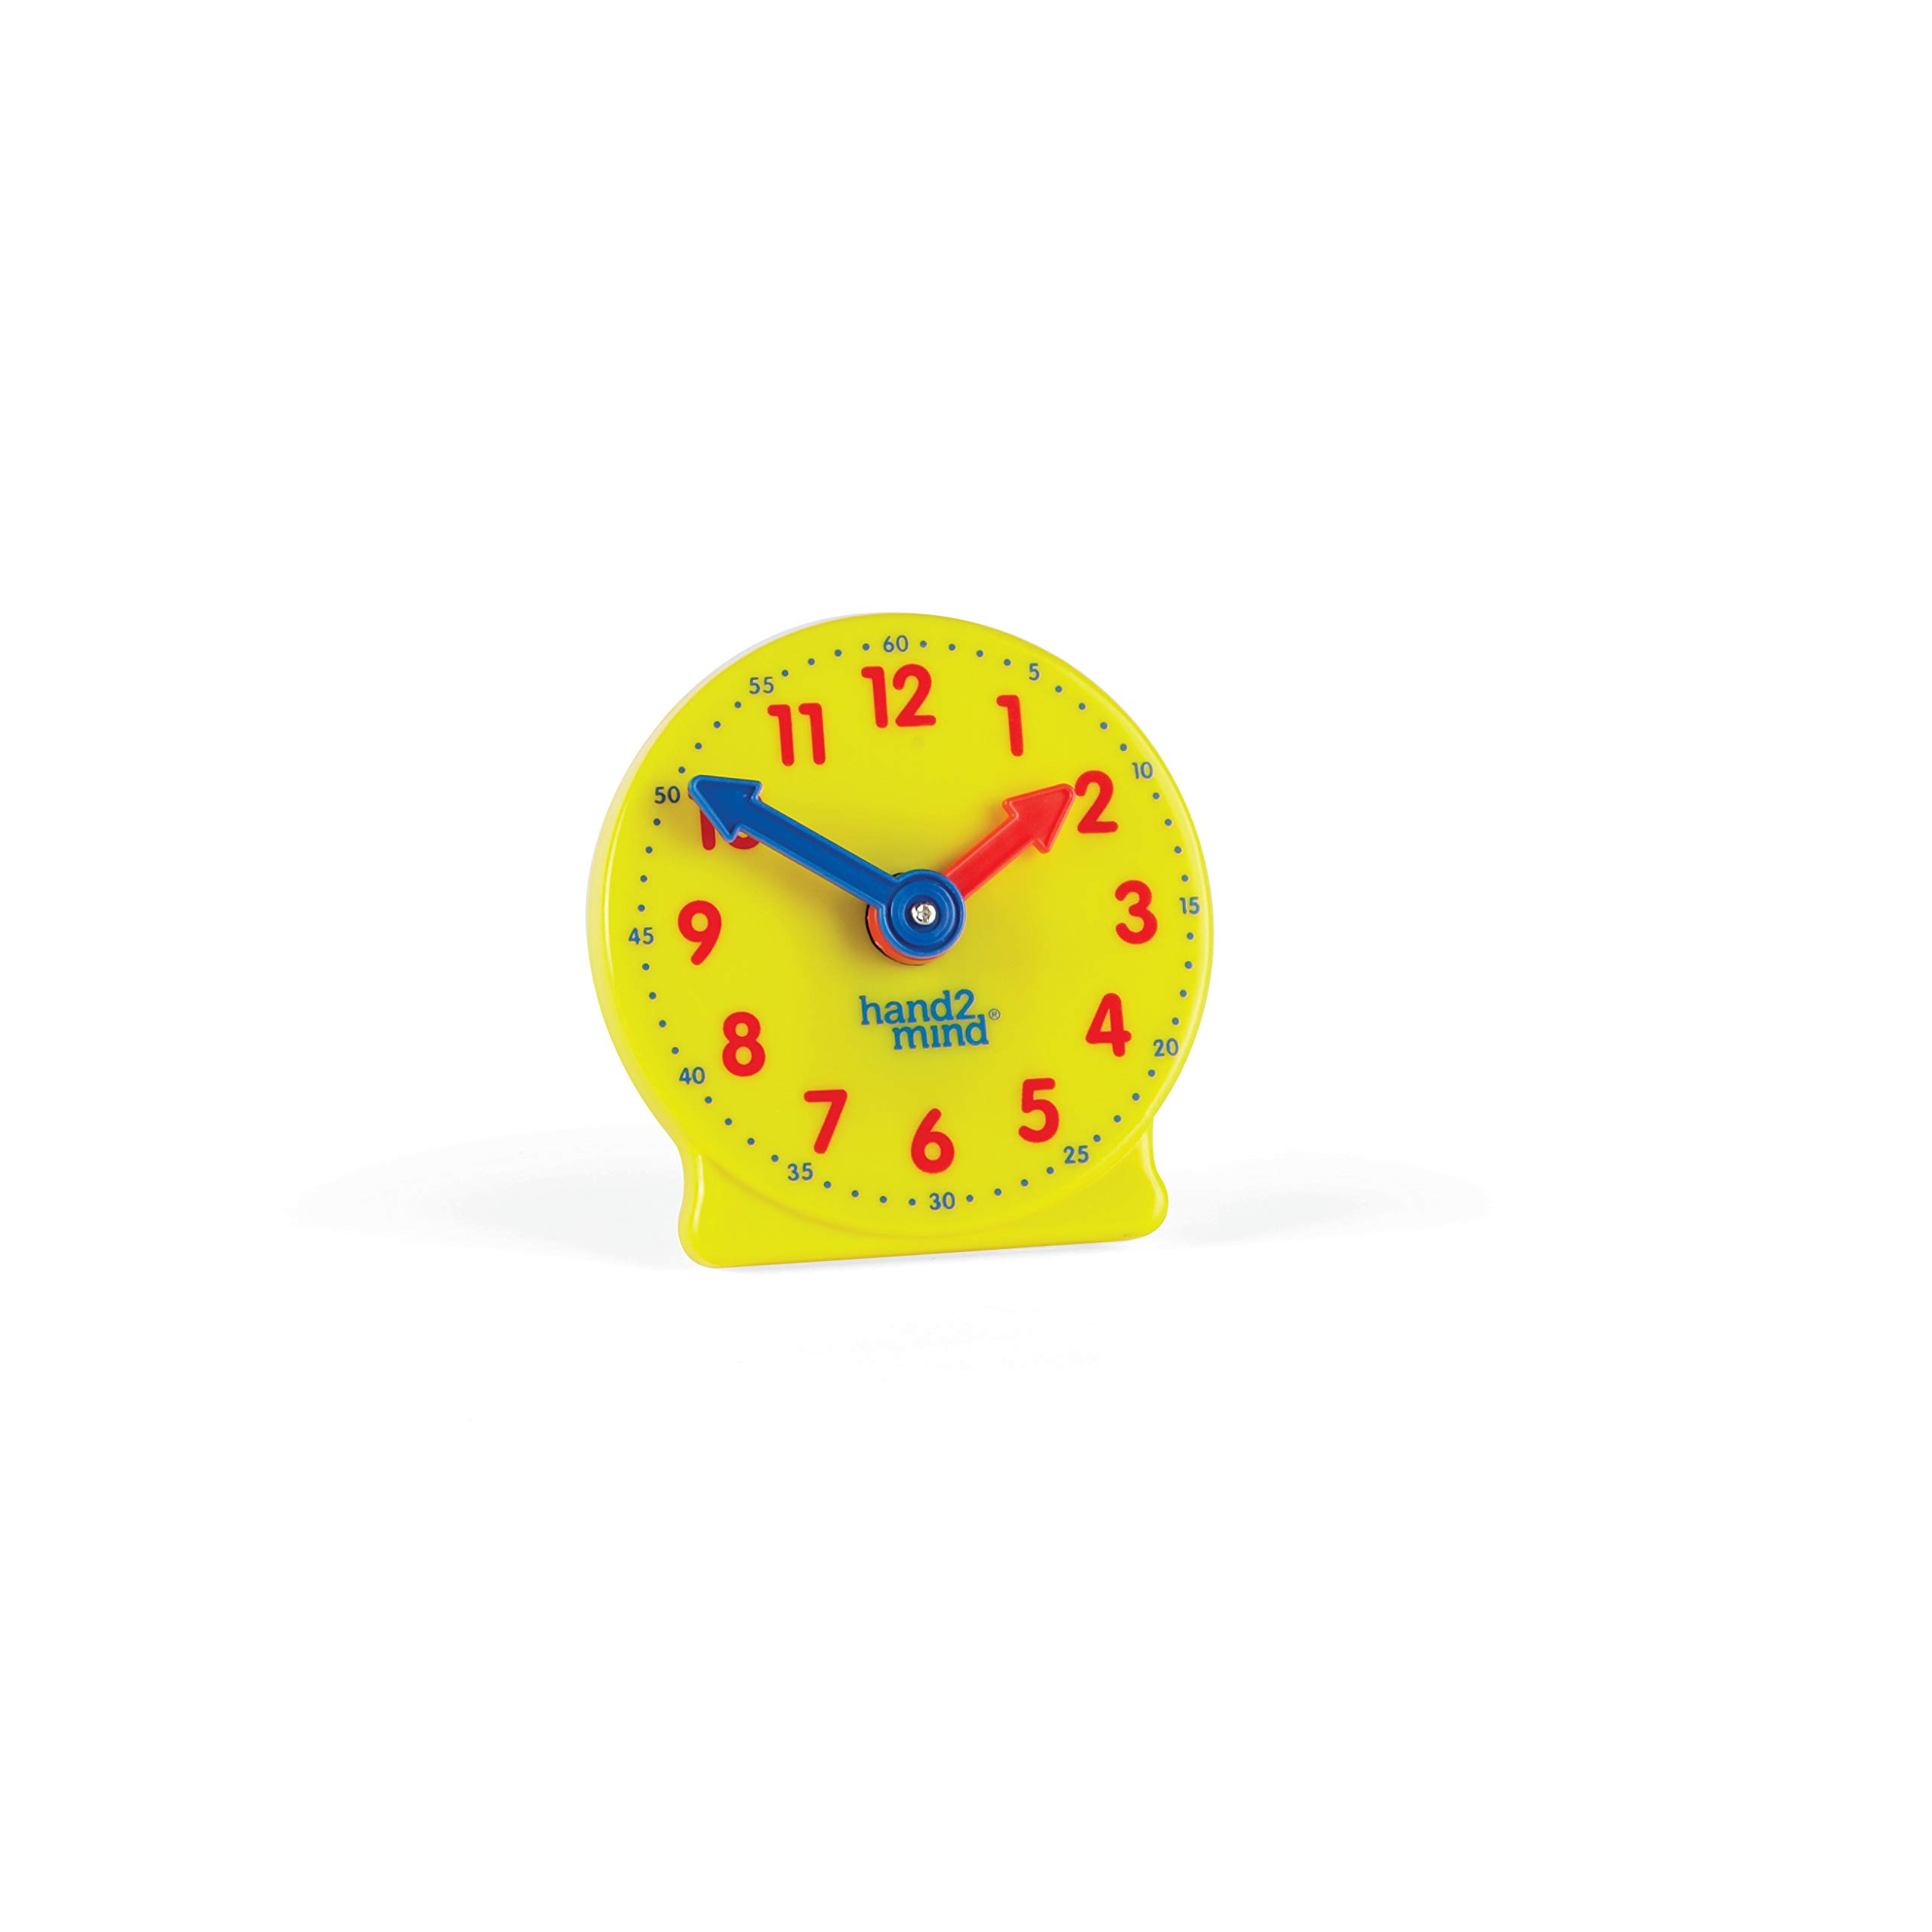 hand2mind Geared Clocks Classroom Kit (Set of 24) by hand2mind (Image #3)